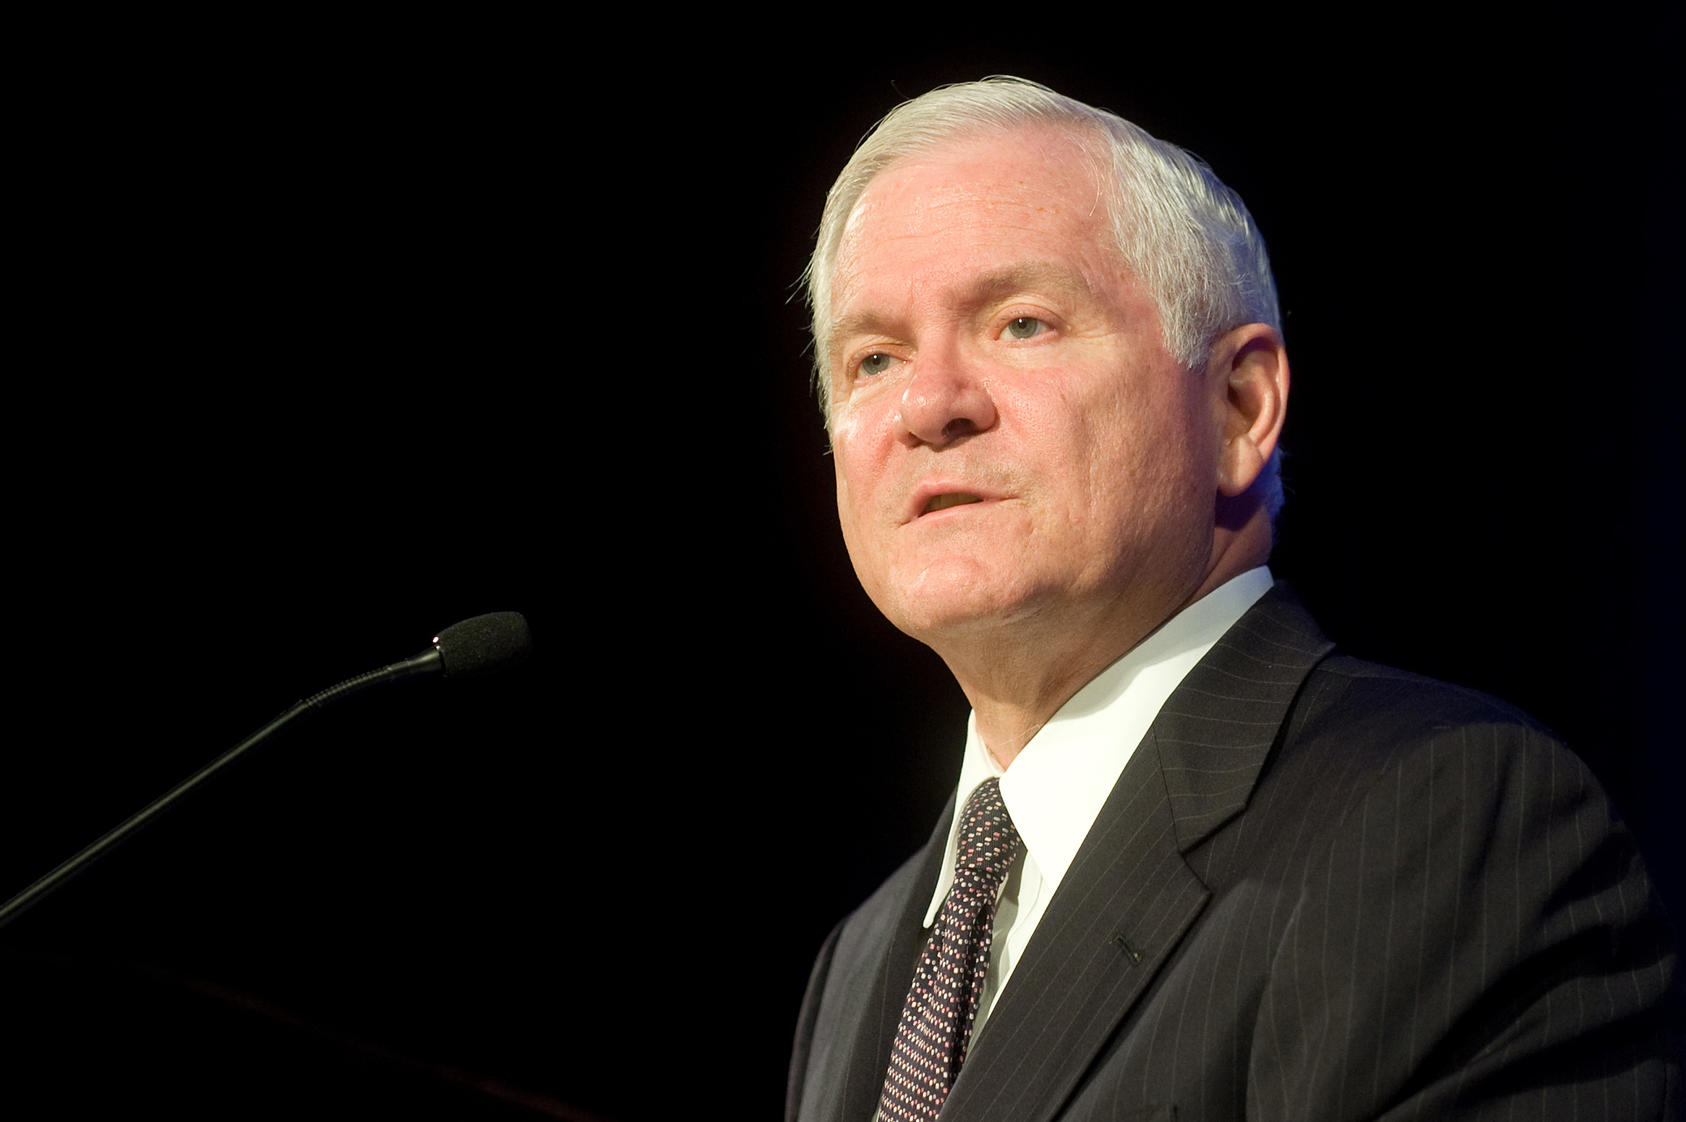 Secretary of Defense Robert M. Gates